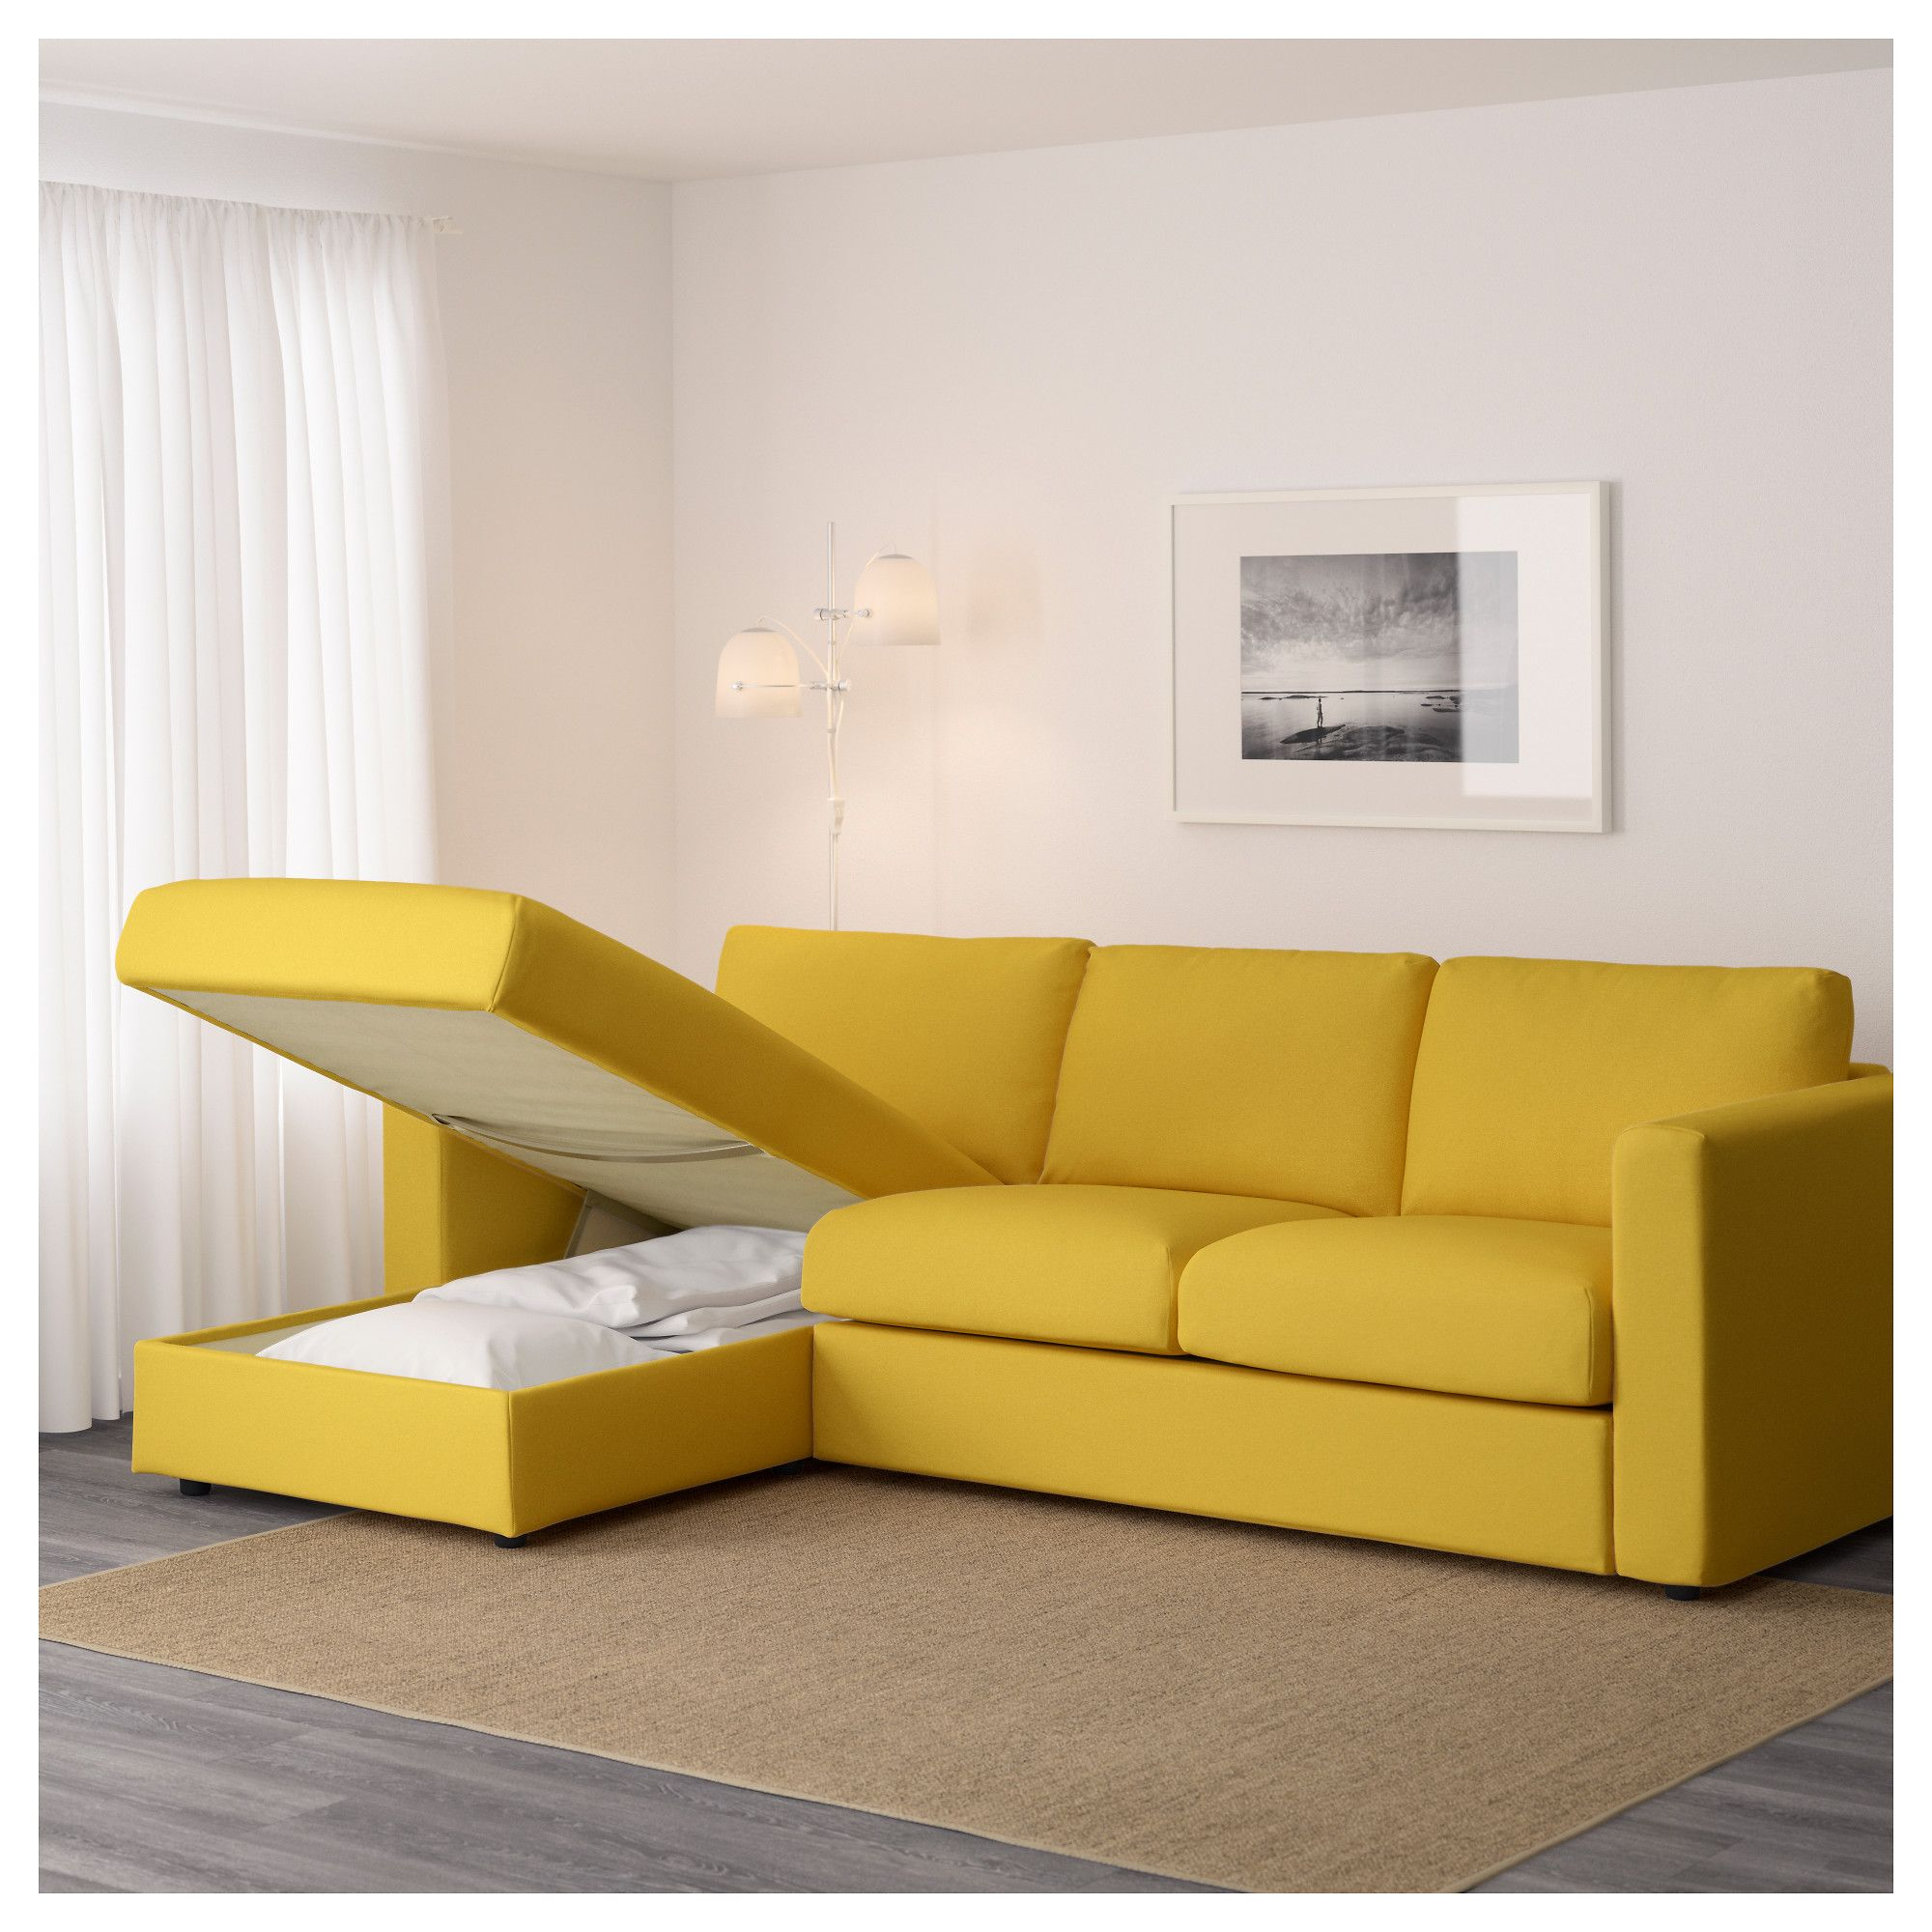 Sofa Hudson Möbelhaus Vimle Sofa With Chaise Orrsta Golden Yellow Apartment In